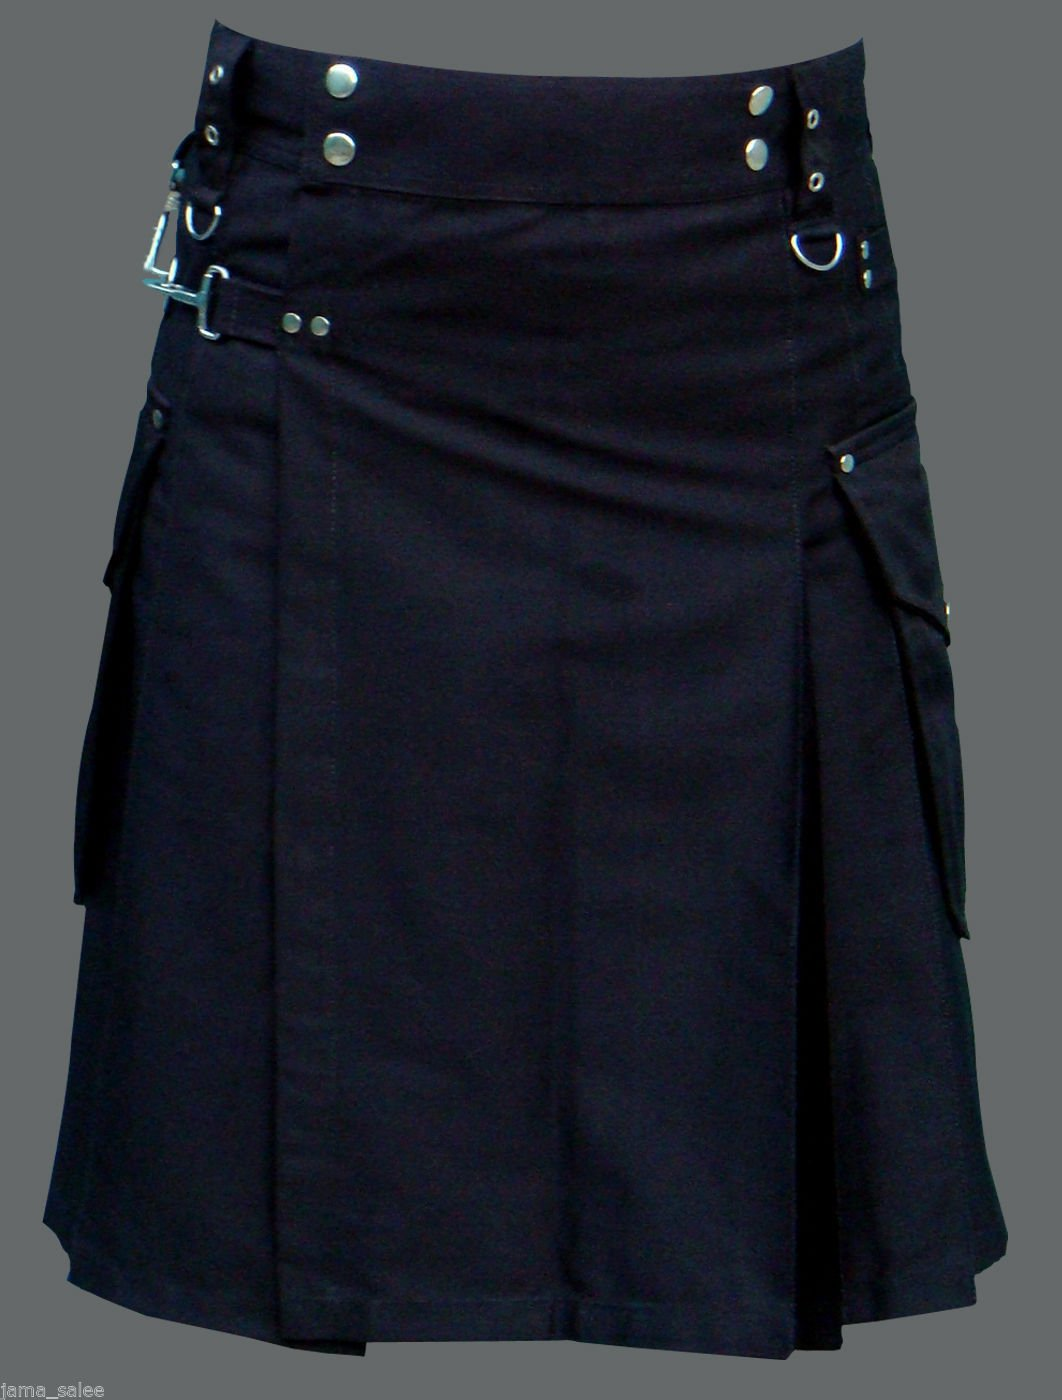 Deluxe Black Cotton Kilt Handmade Utility Gothic Modern Kilt with Cargo Pockets Waist Size 48 to Fit